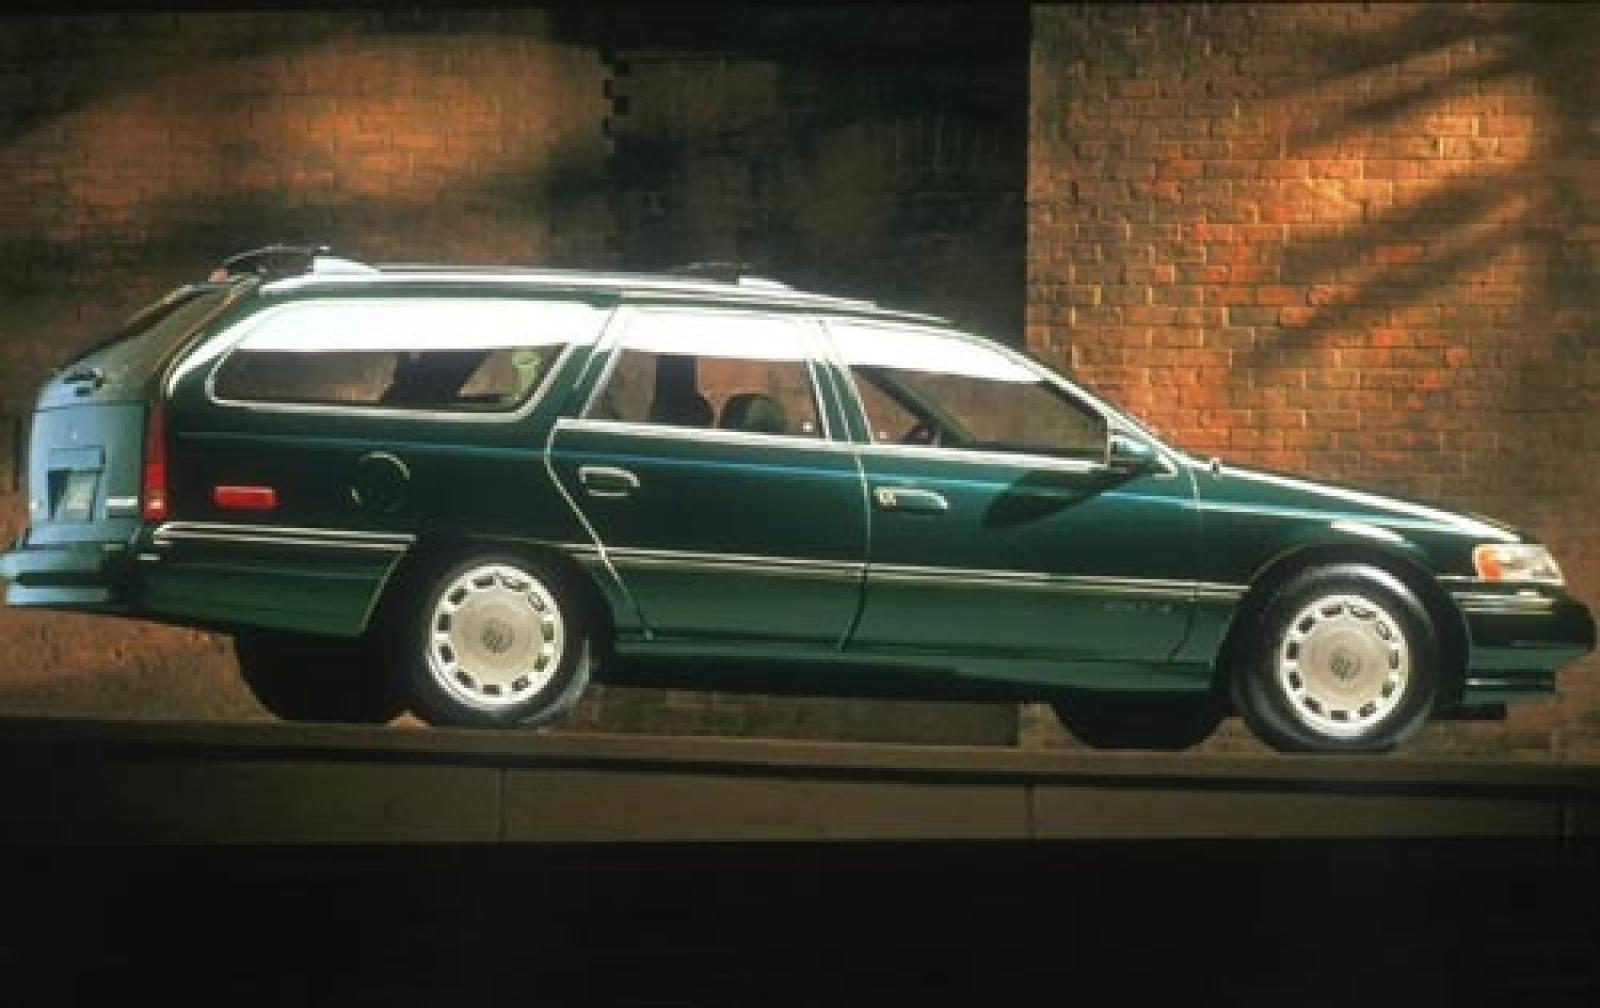 1995 mercury sable information and photos zombiedrive. Black Bedroom Furniture Sets. Home Design Ideas